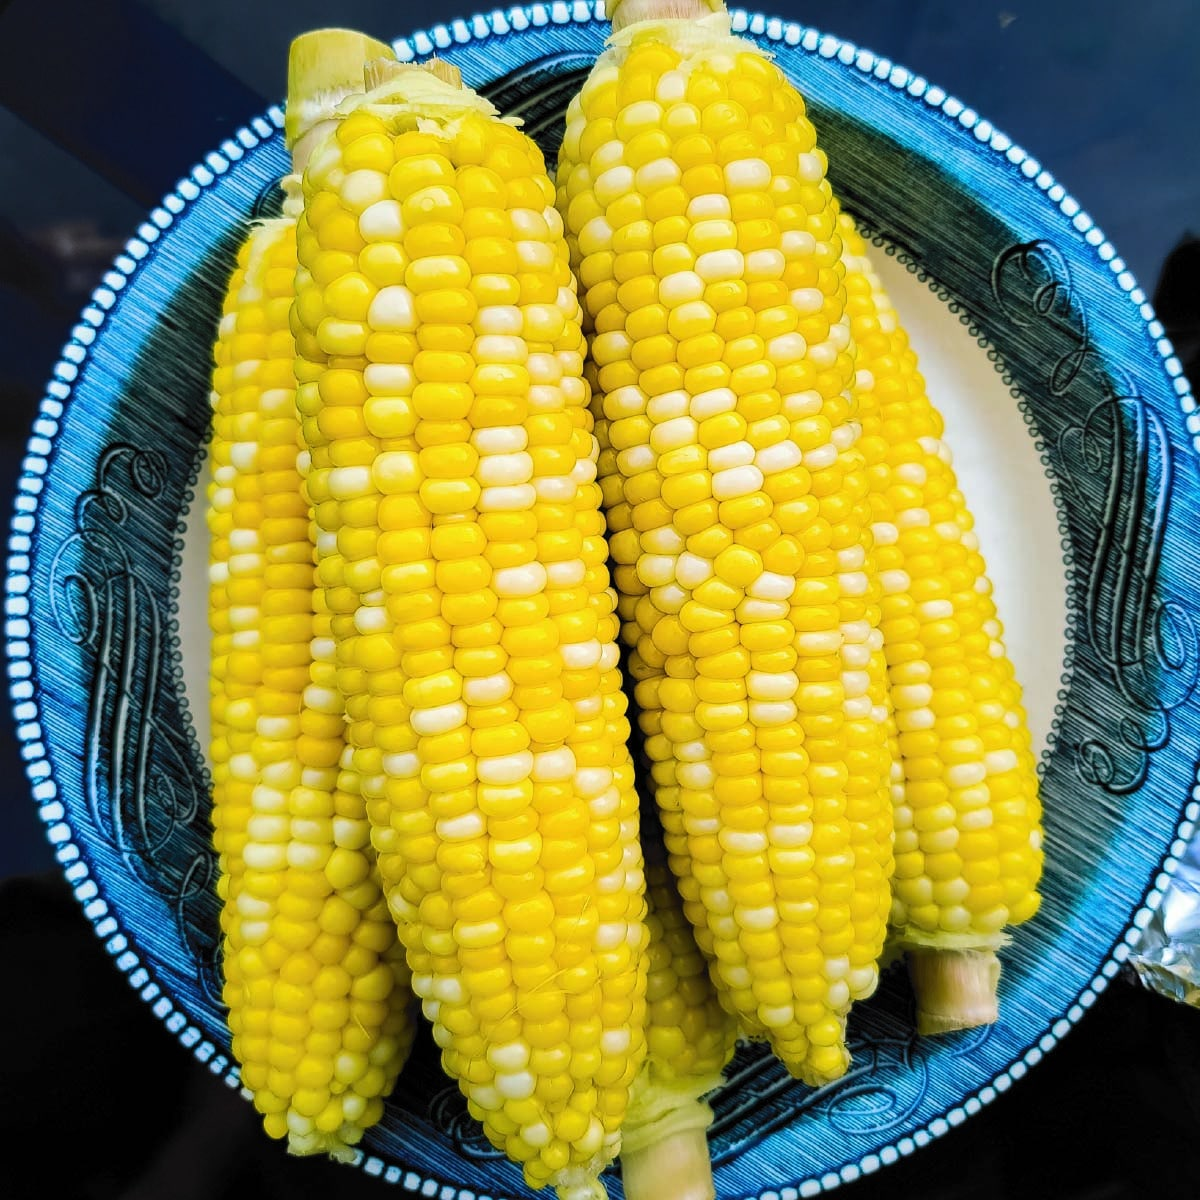 Ears of corn on the cob sitting in a dish after cooking ready to be served.